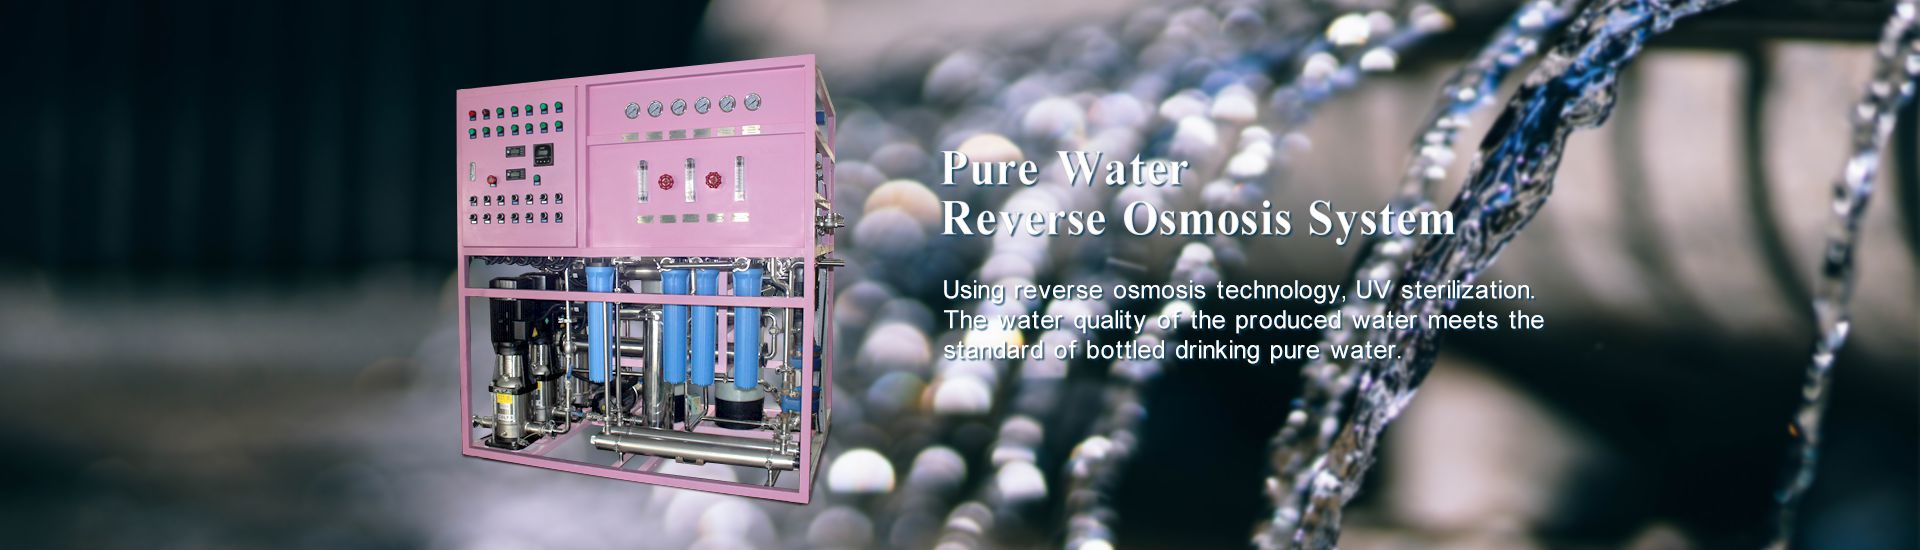 Two-stage Pure Water RO syste